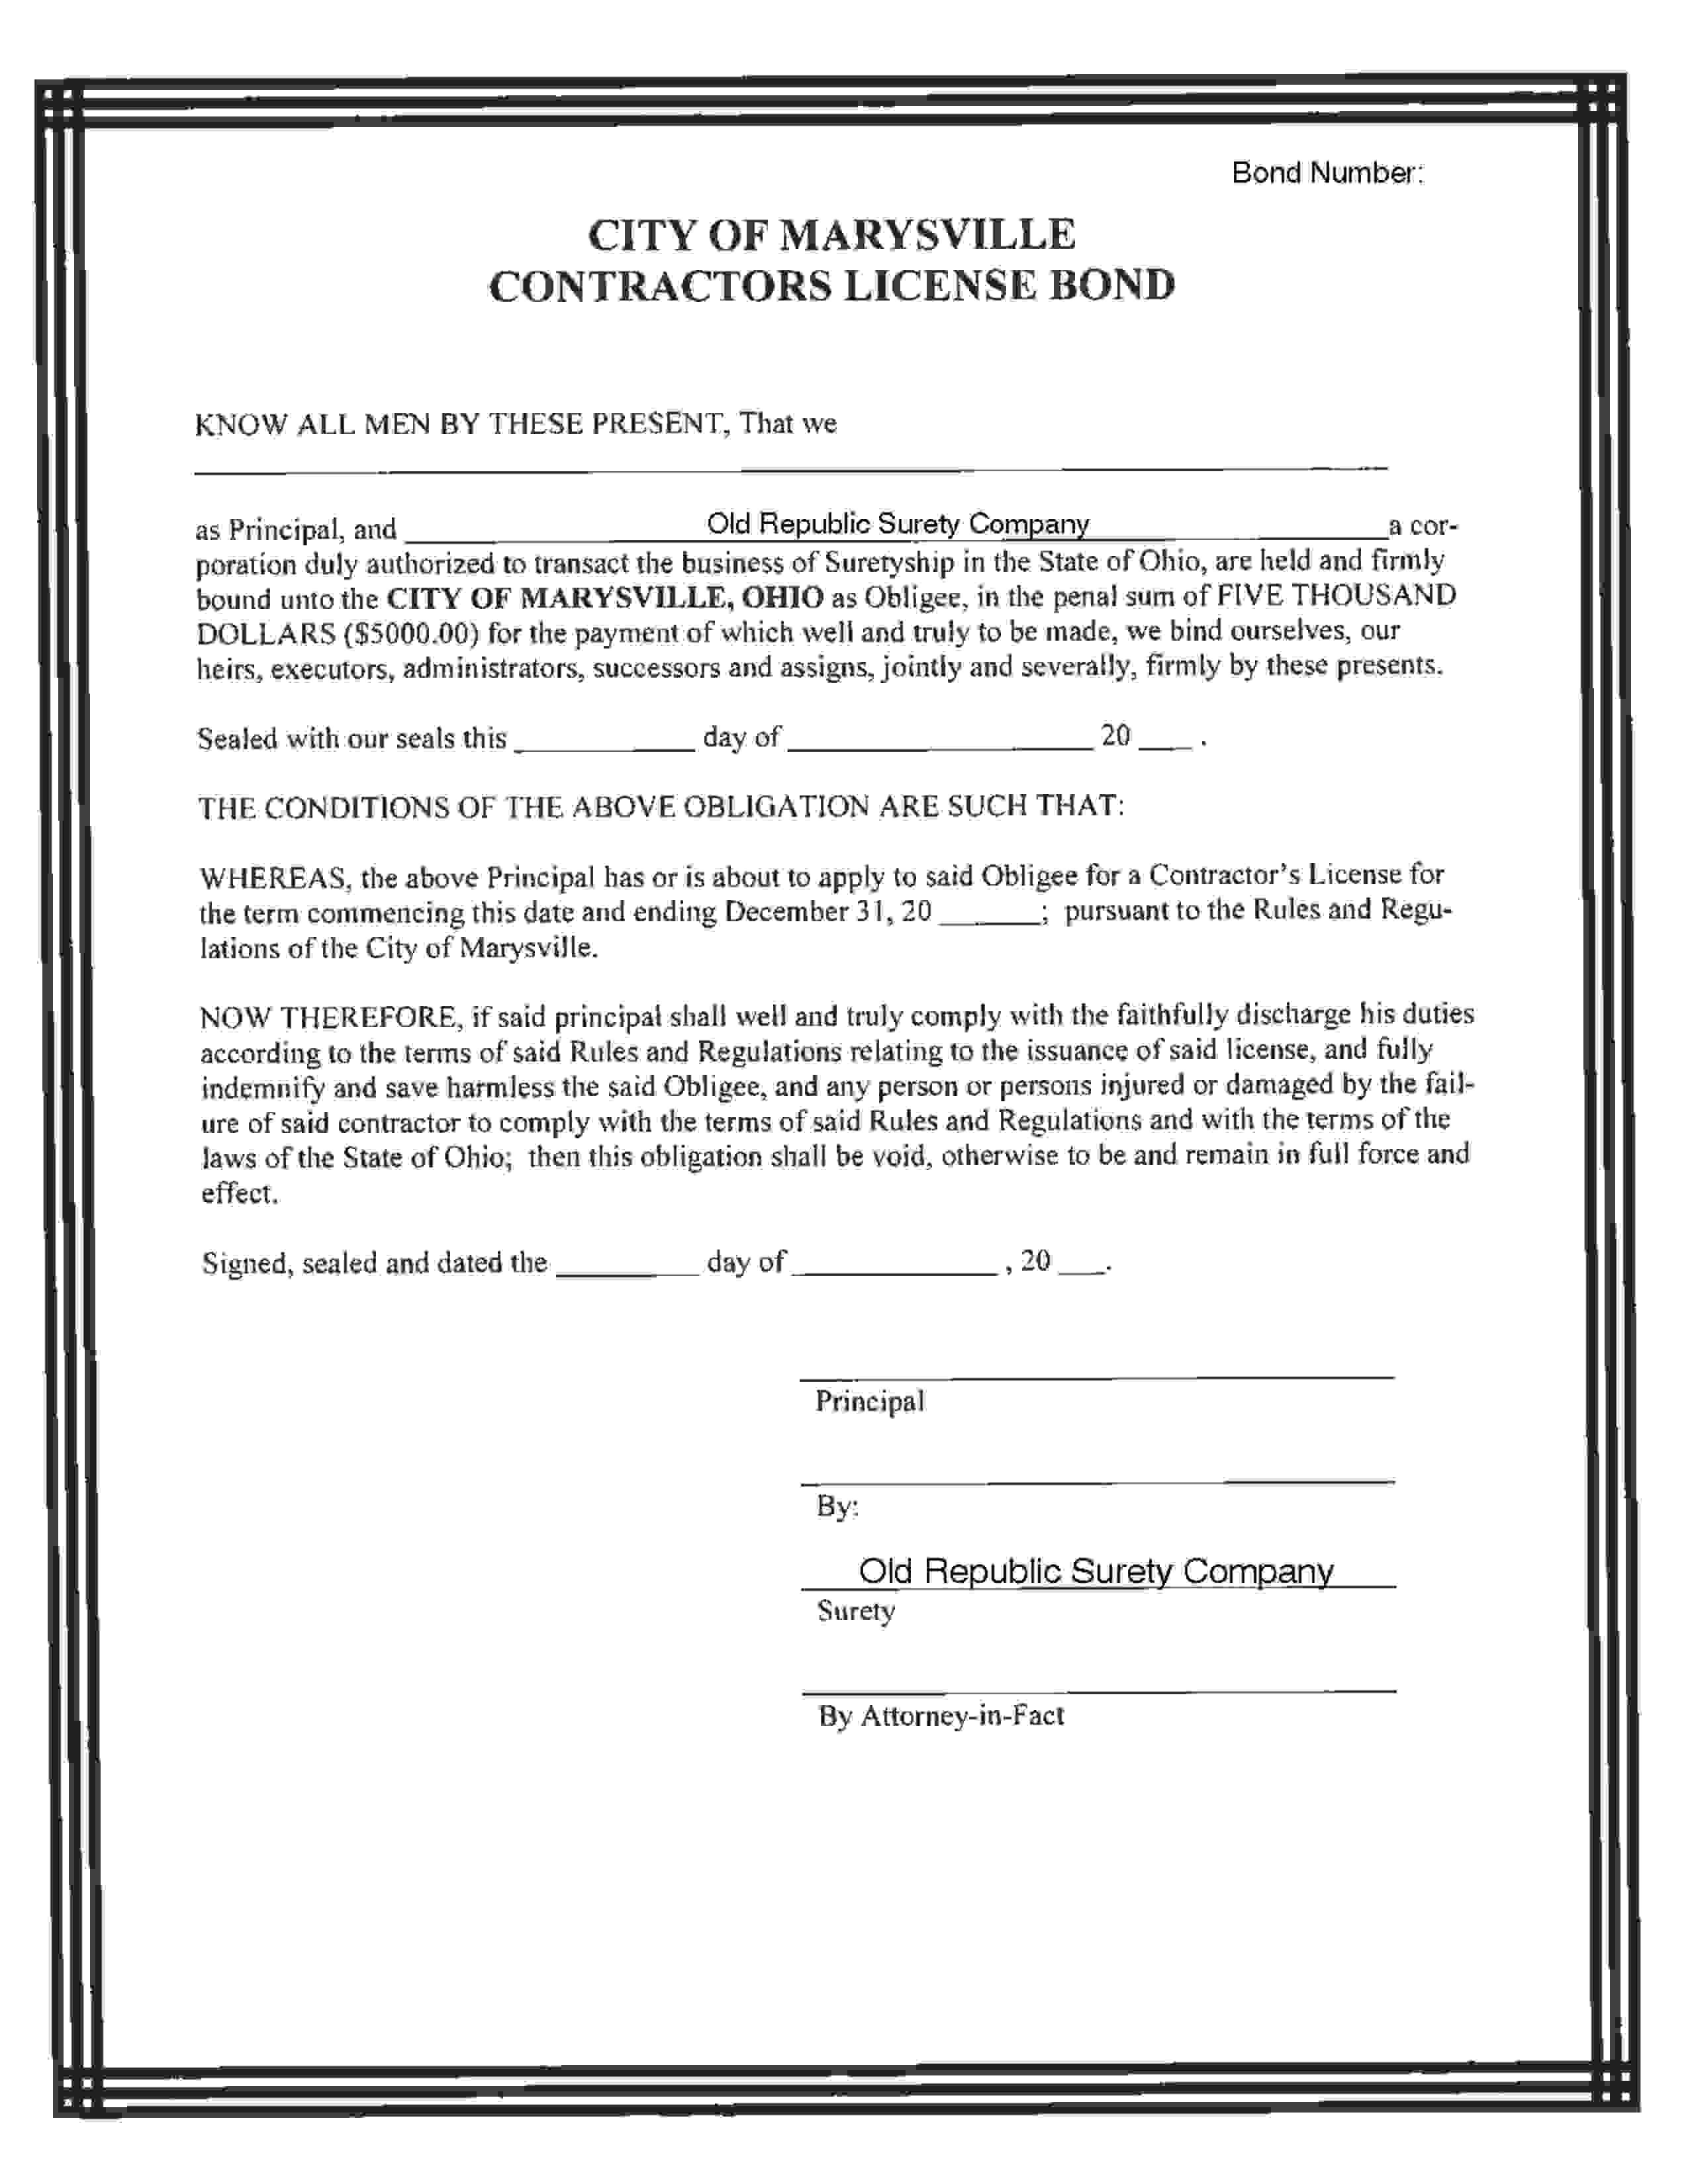 Marysville - City Contractor's License sample image